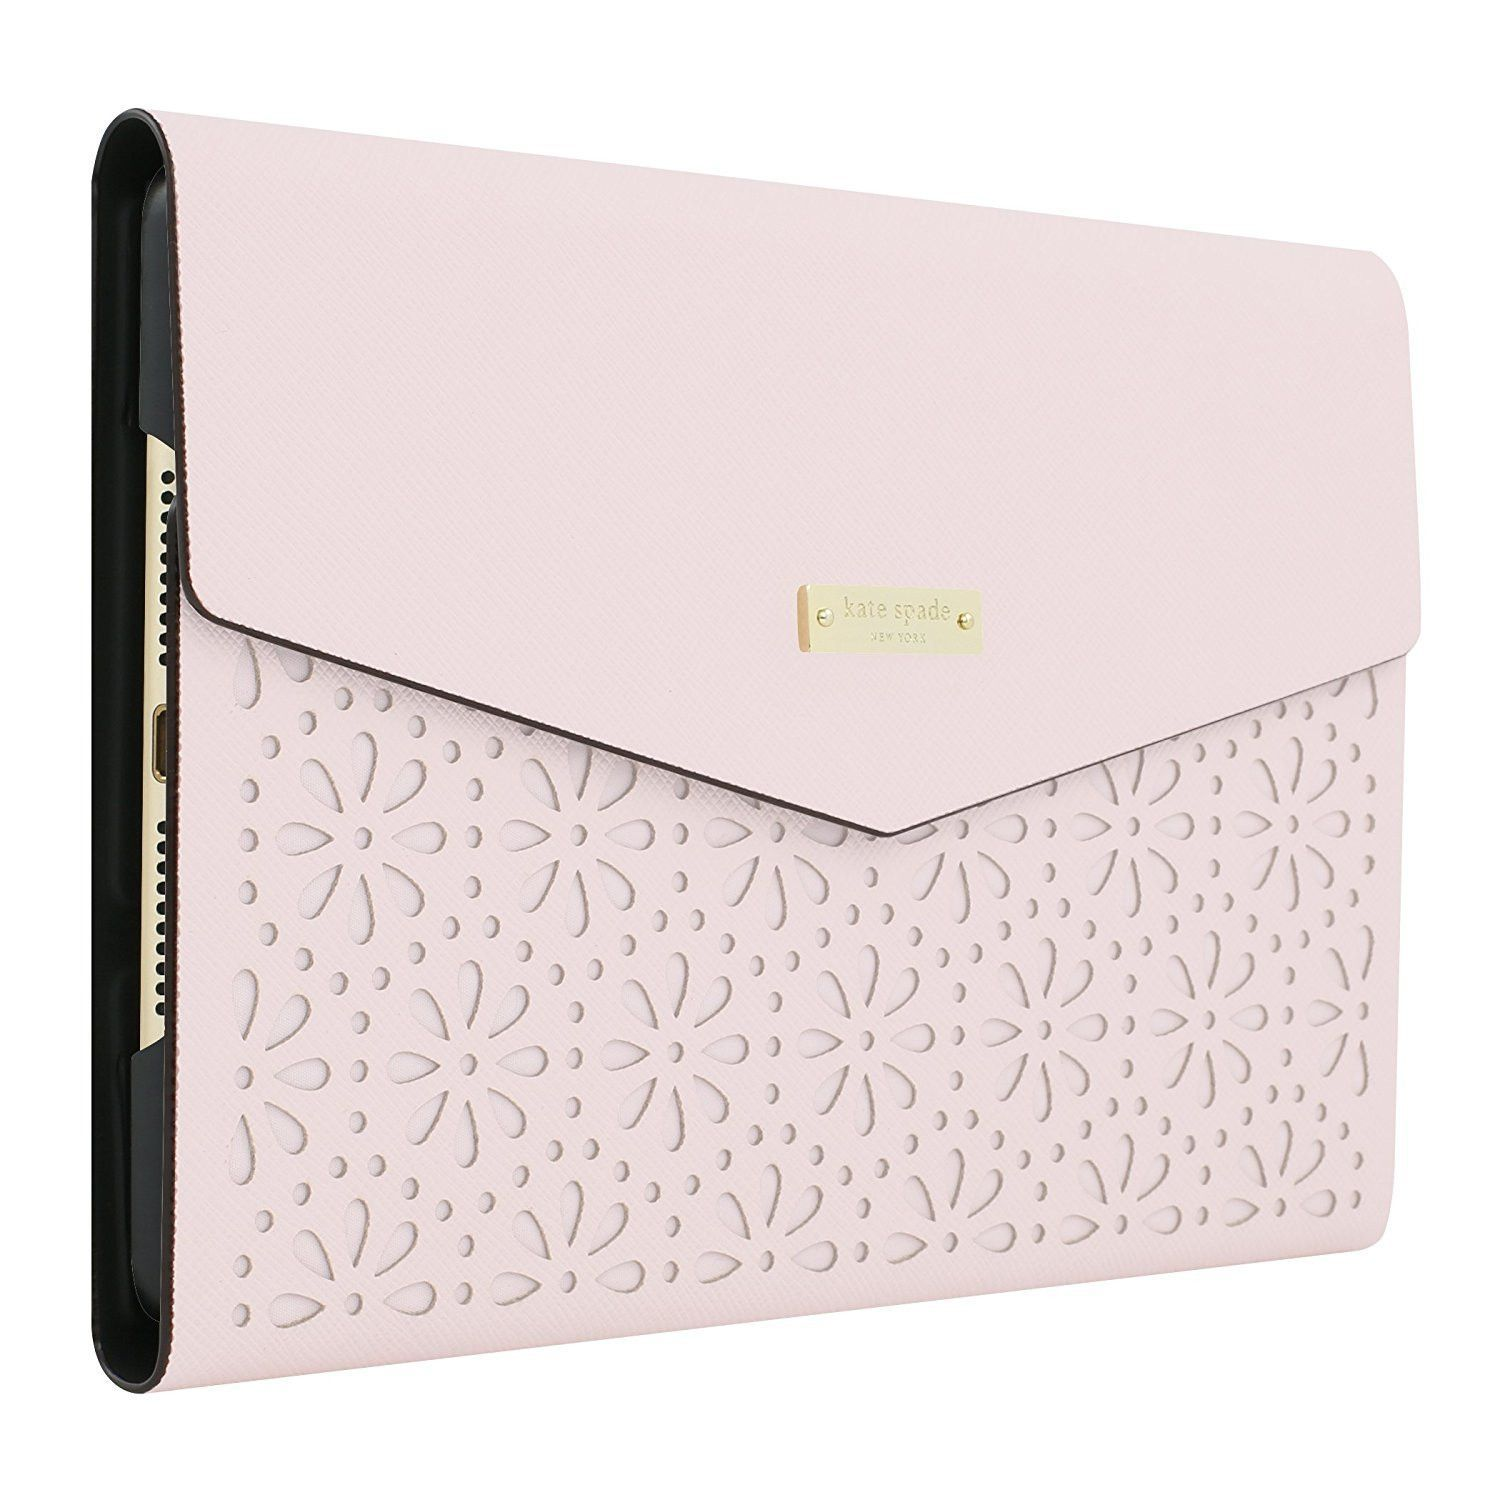 online store c297a 22e49 Kate Spade Pink Ipad Mini 4 Case | kate spade. in 2019 | Kate spade ...